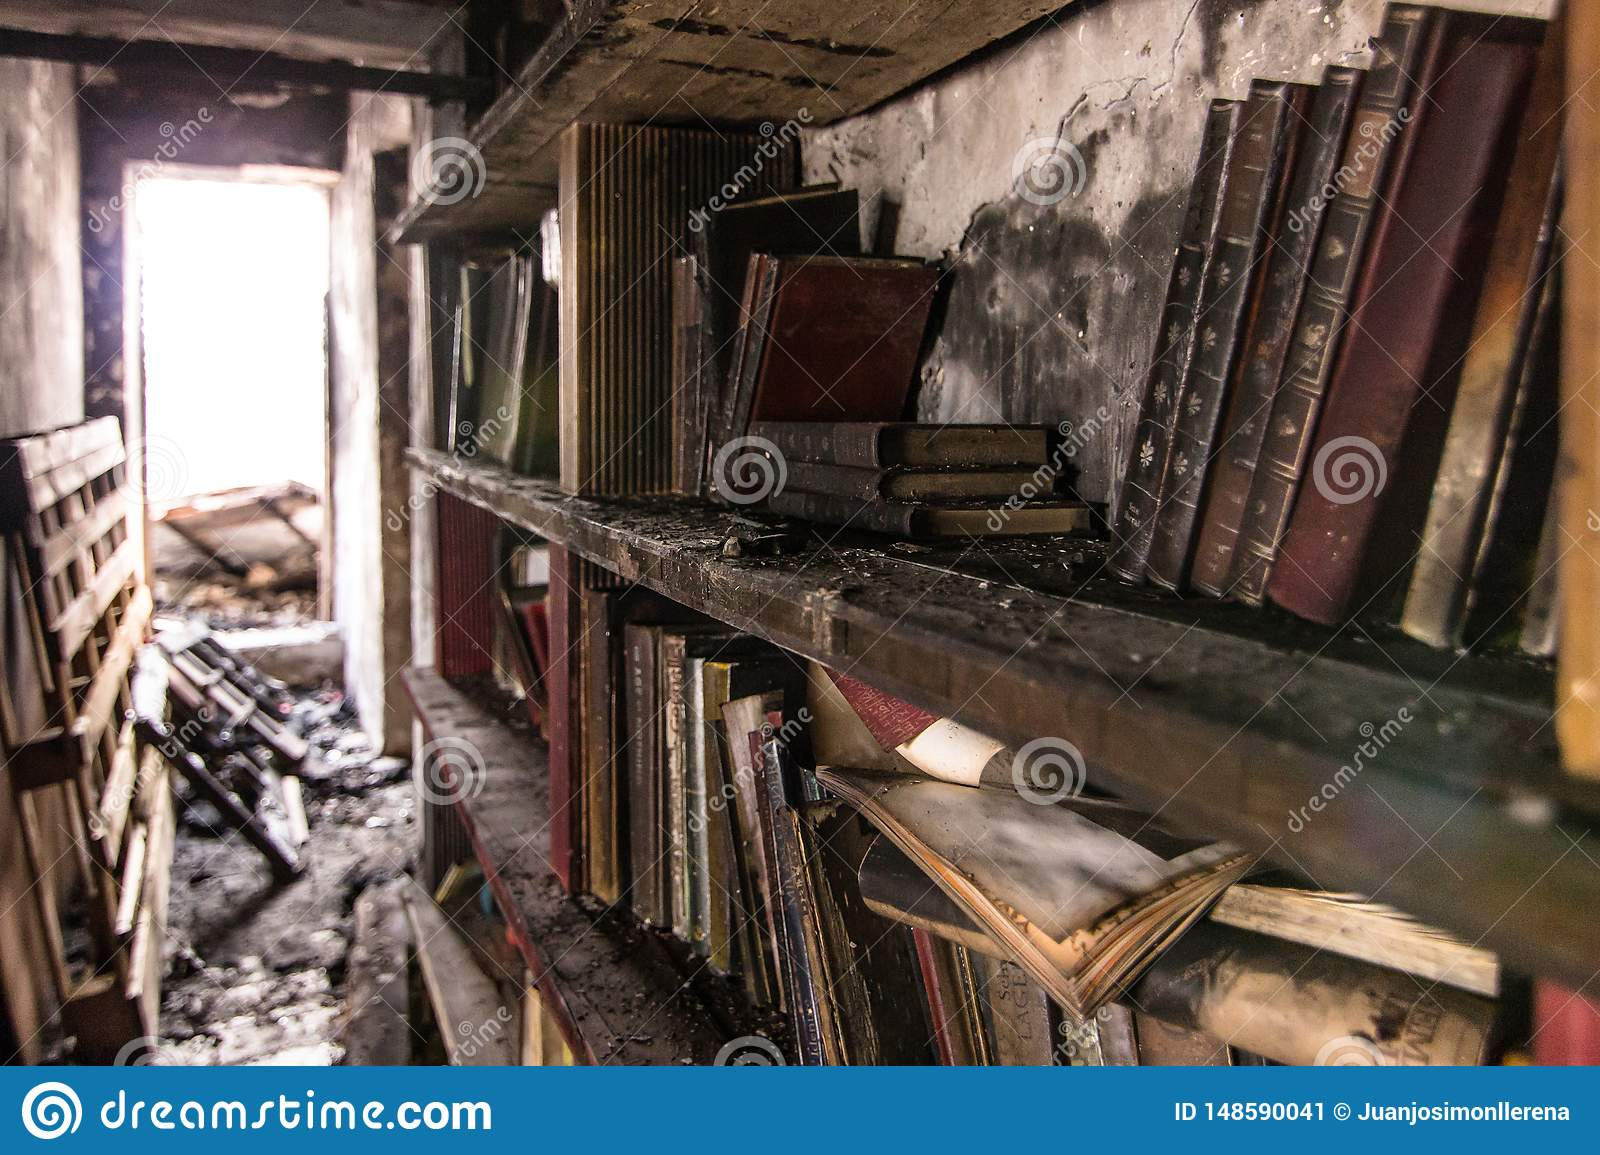 Book burnt in a bookcase after a fire